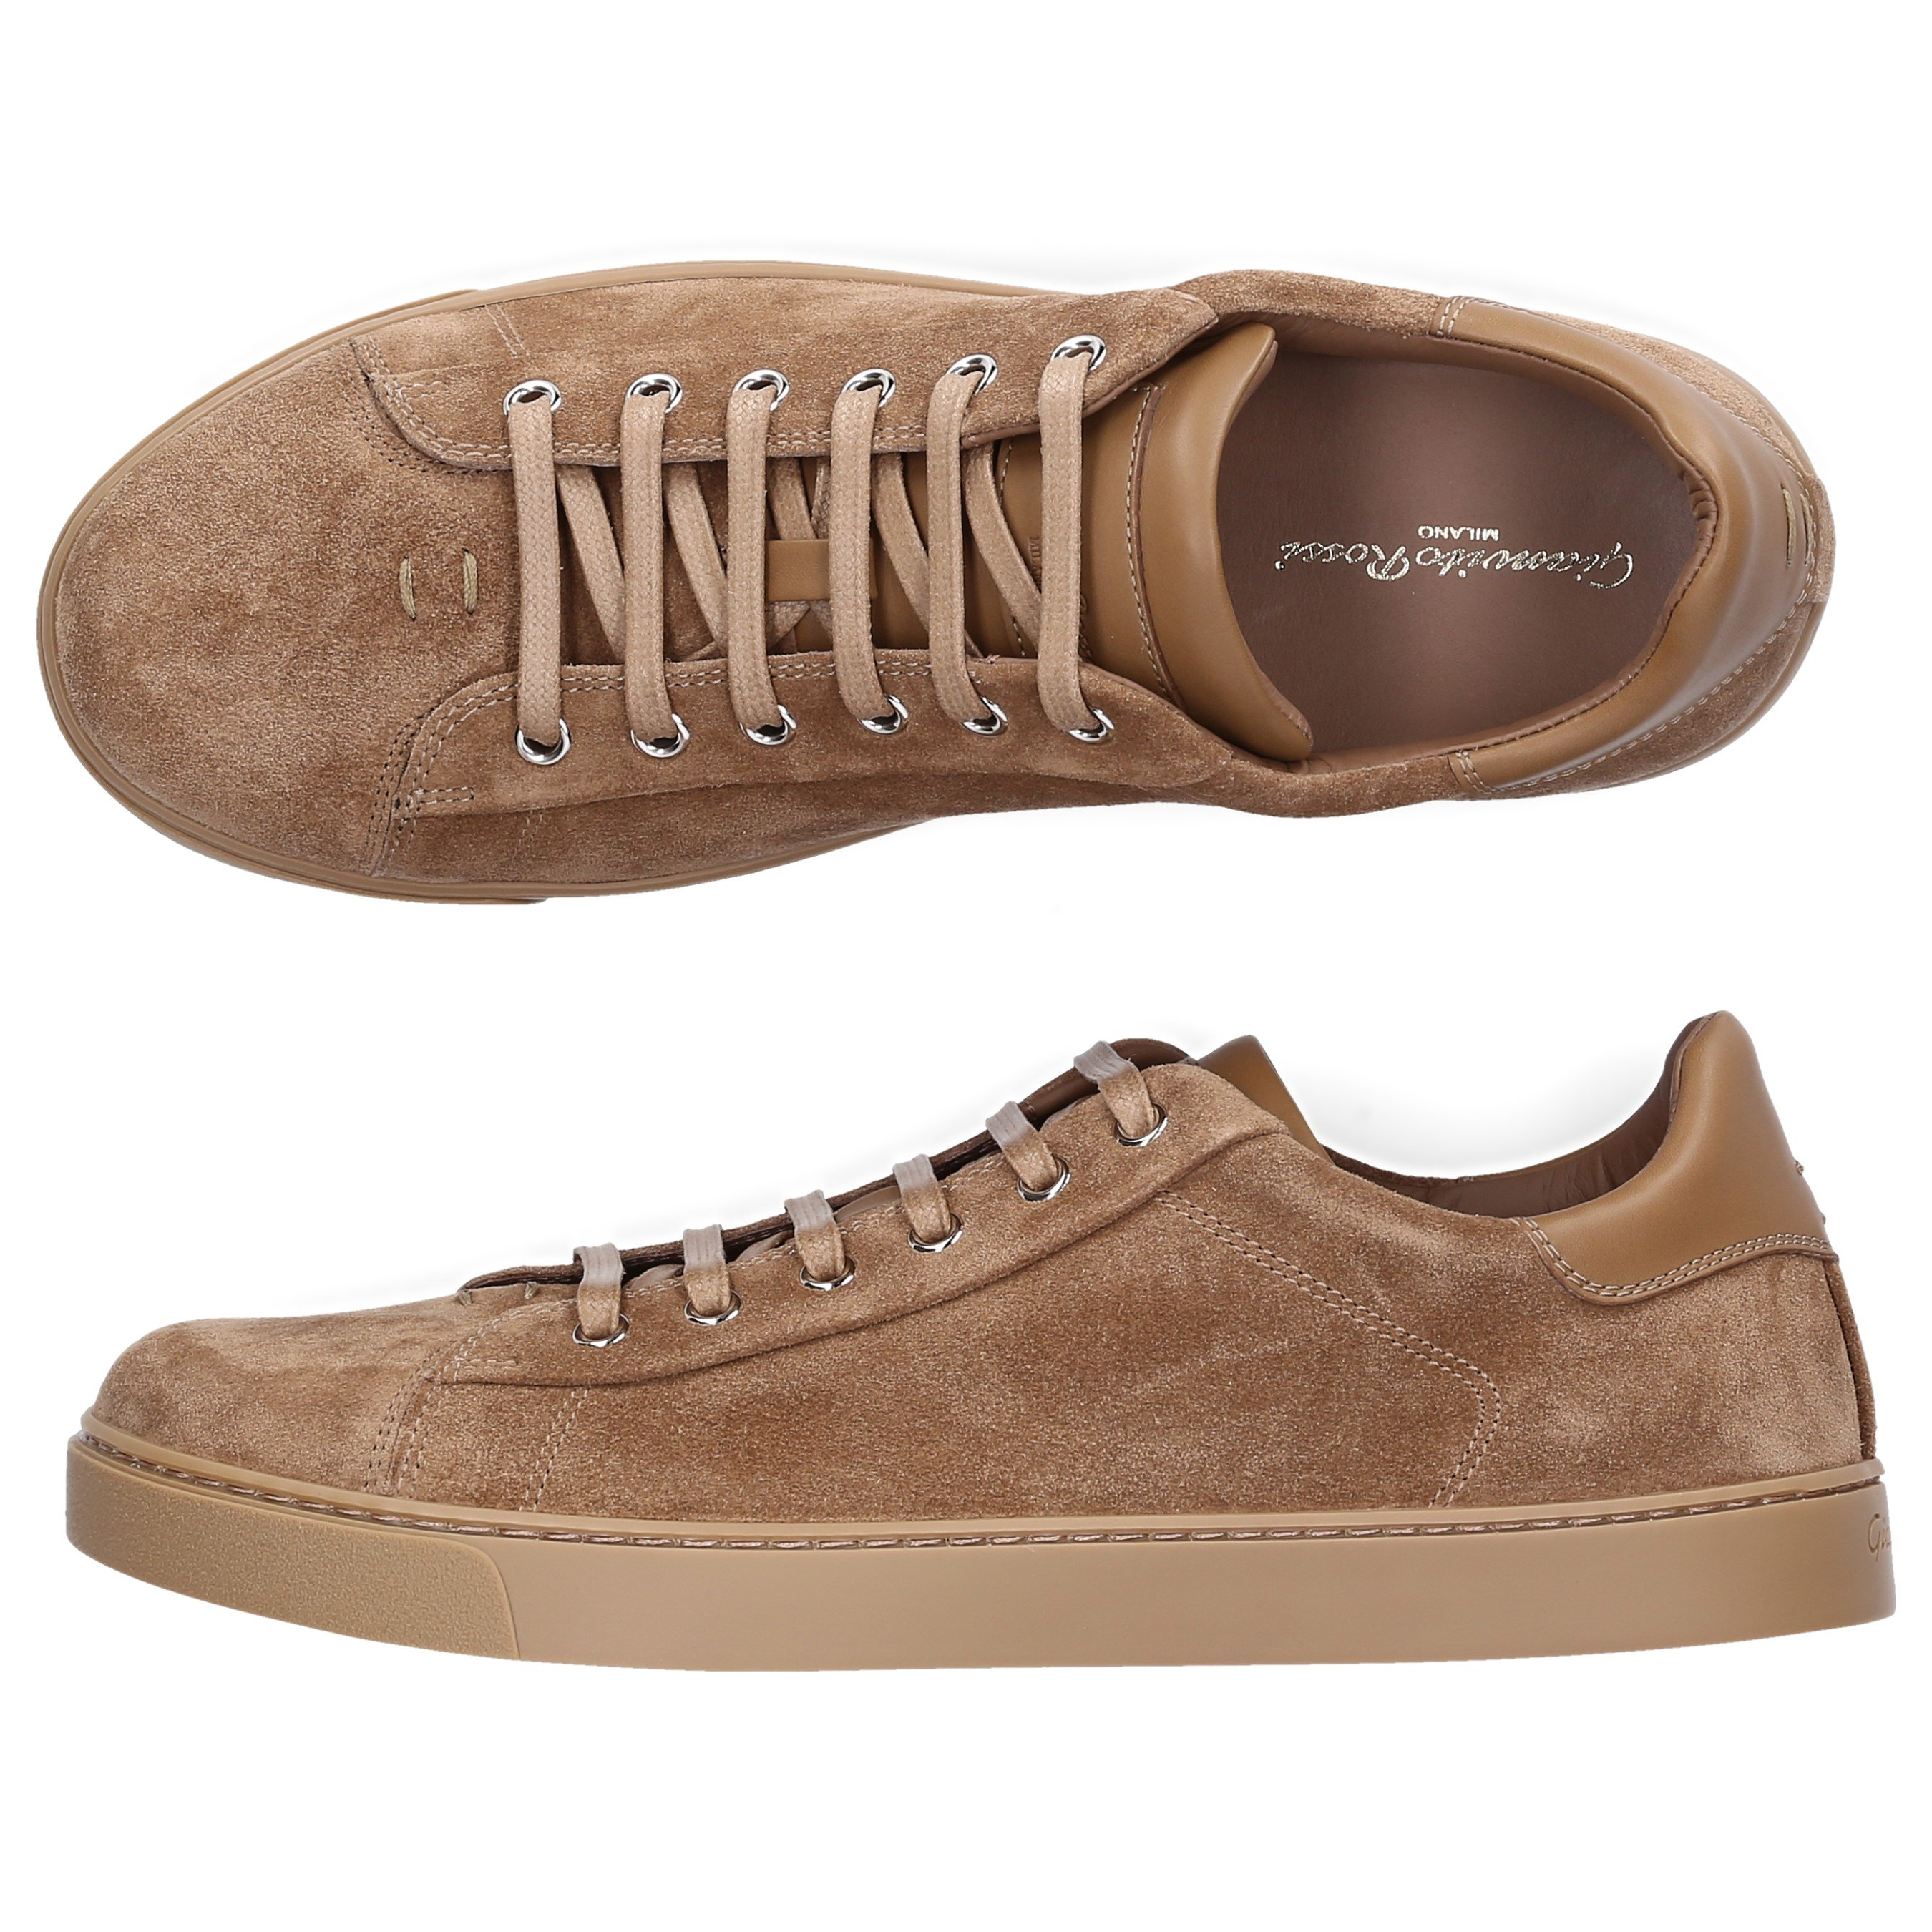 Gianvito Rossi LOW-TOP SNEAKERS LOW TOP CALF-SUEDE STITCHING CAMEL